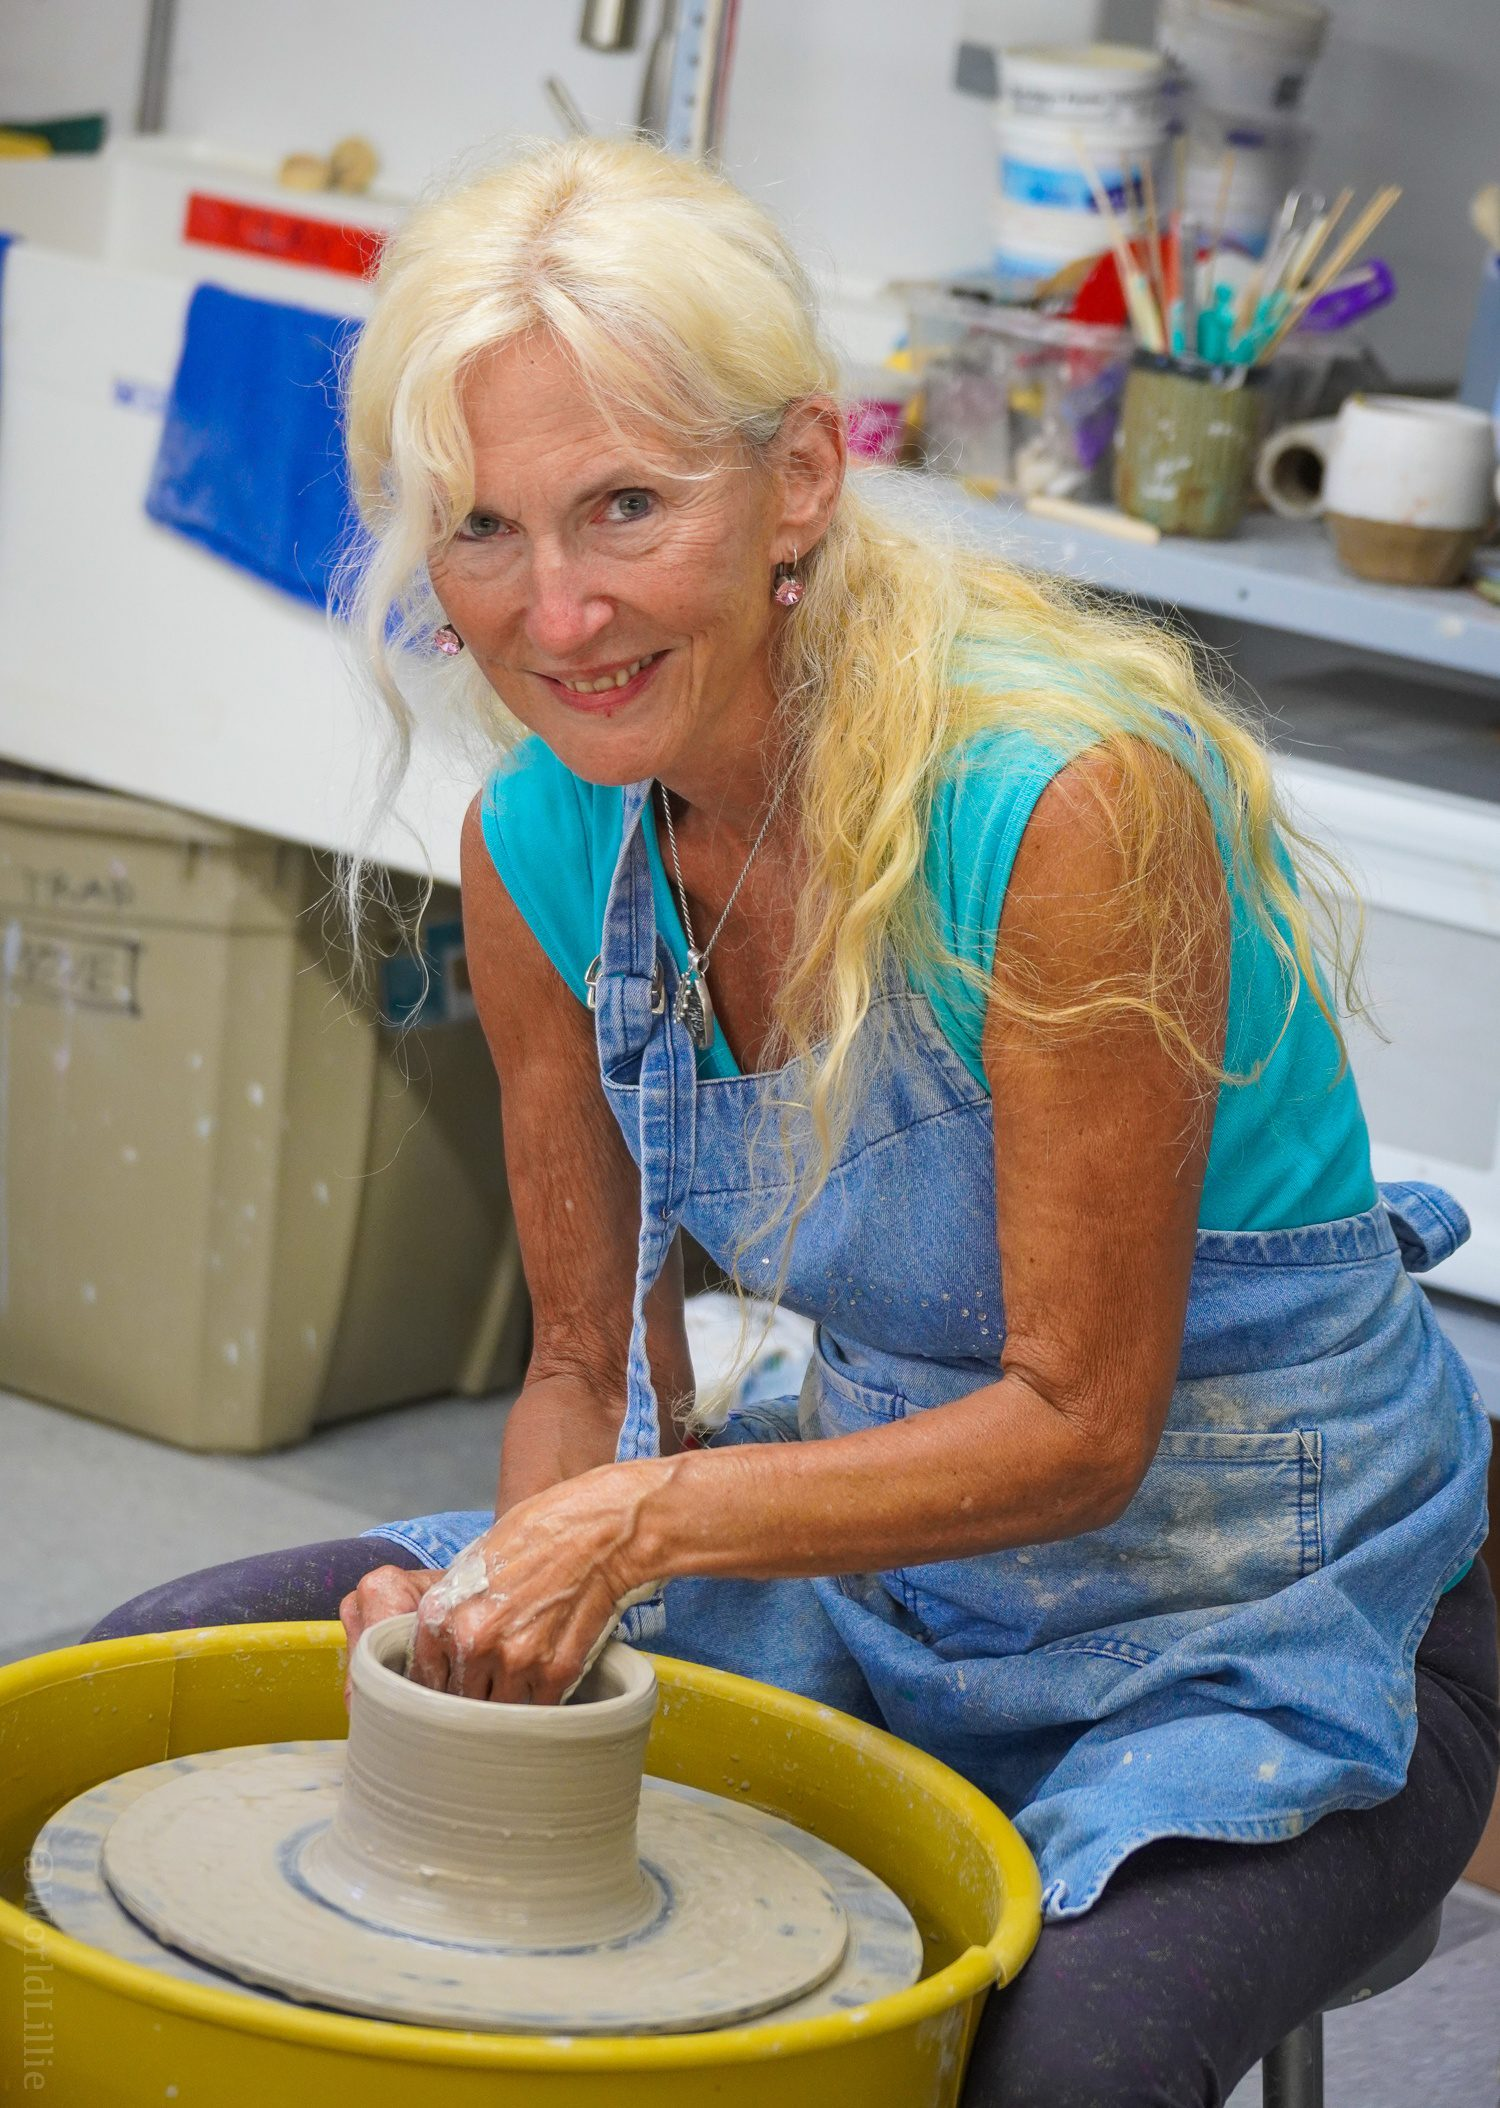 Alexis offers pottery classes in the lower floor.